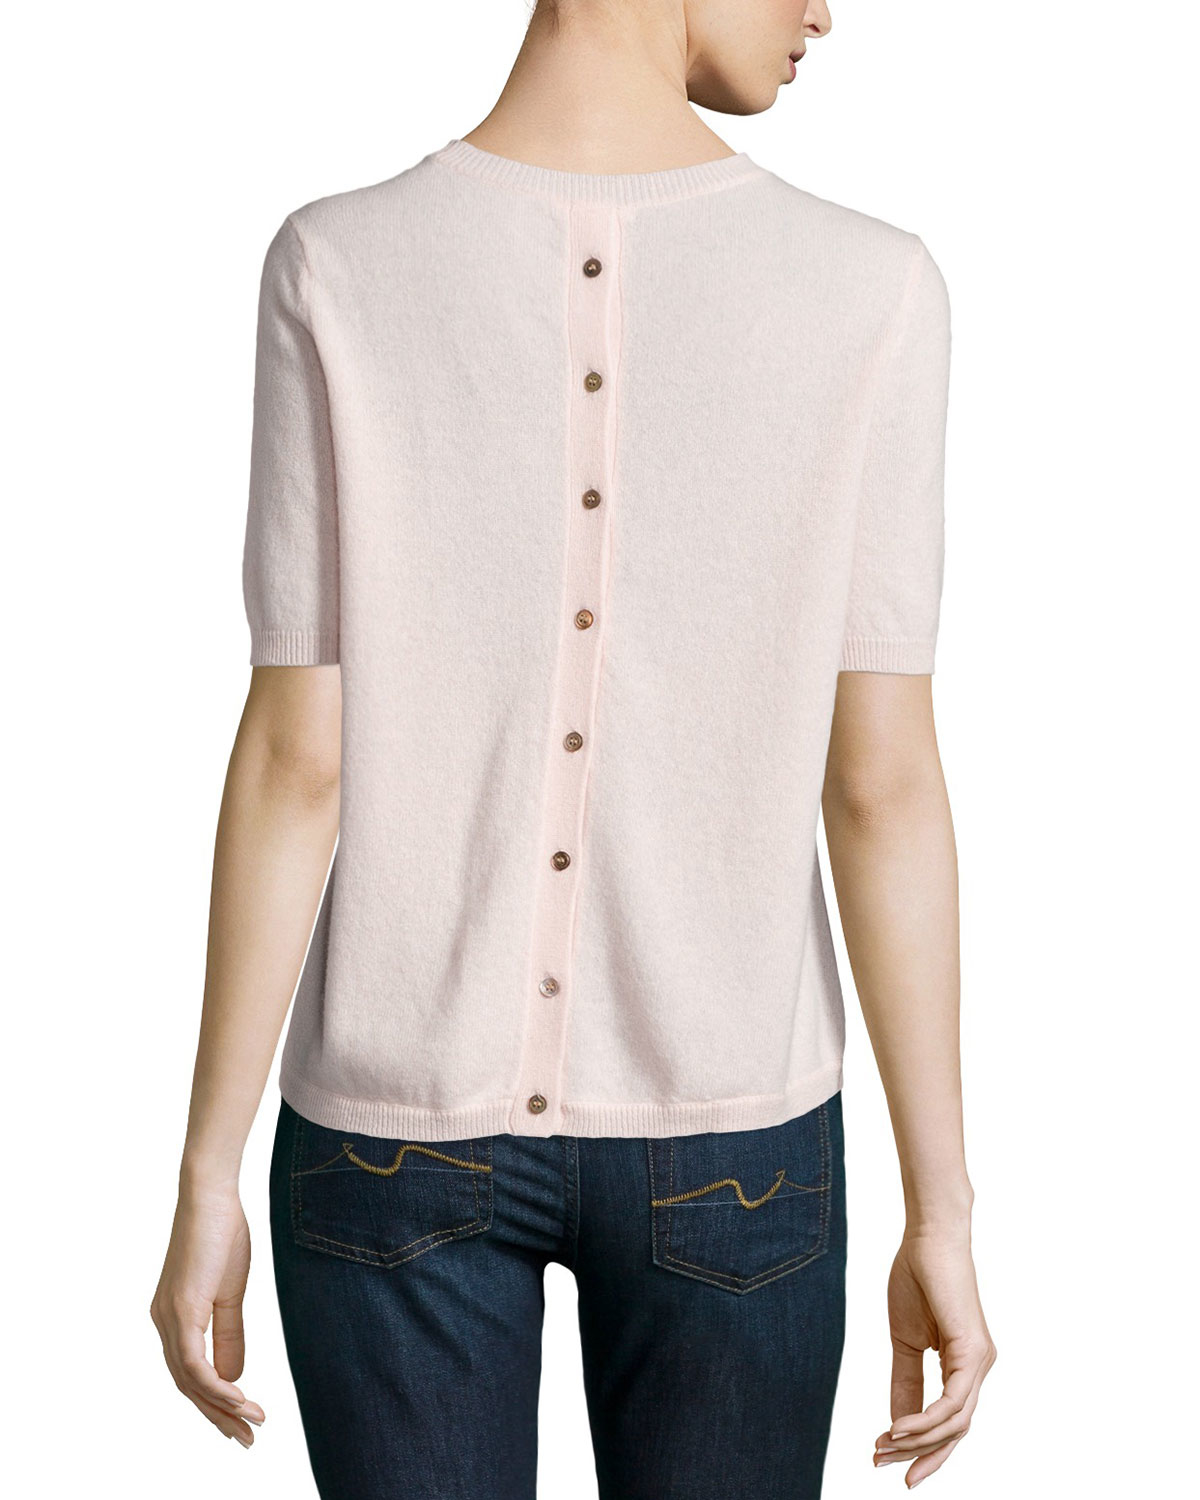 Minnie rose Cashmere Short-sleeve Button-back Cardigan in Pink | Lyst